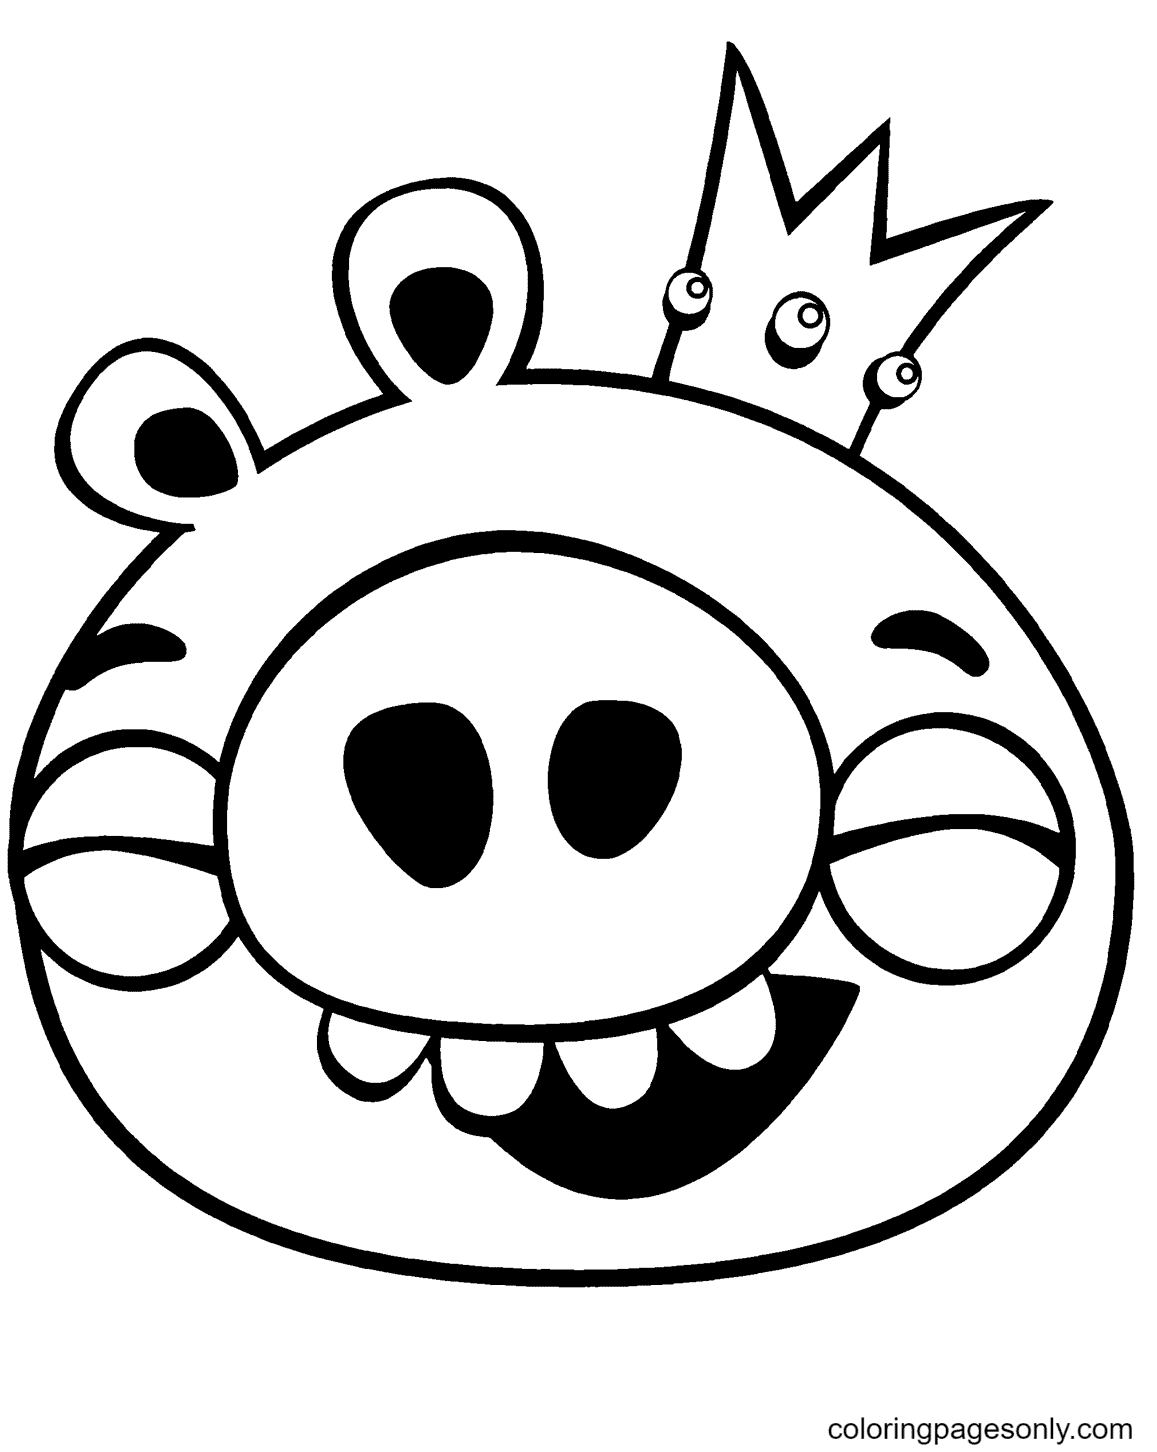 King Pig Laughing Coloring Page